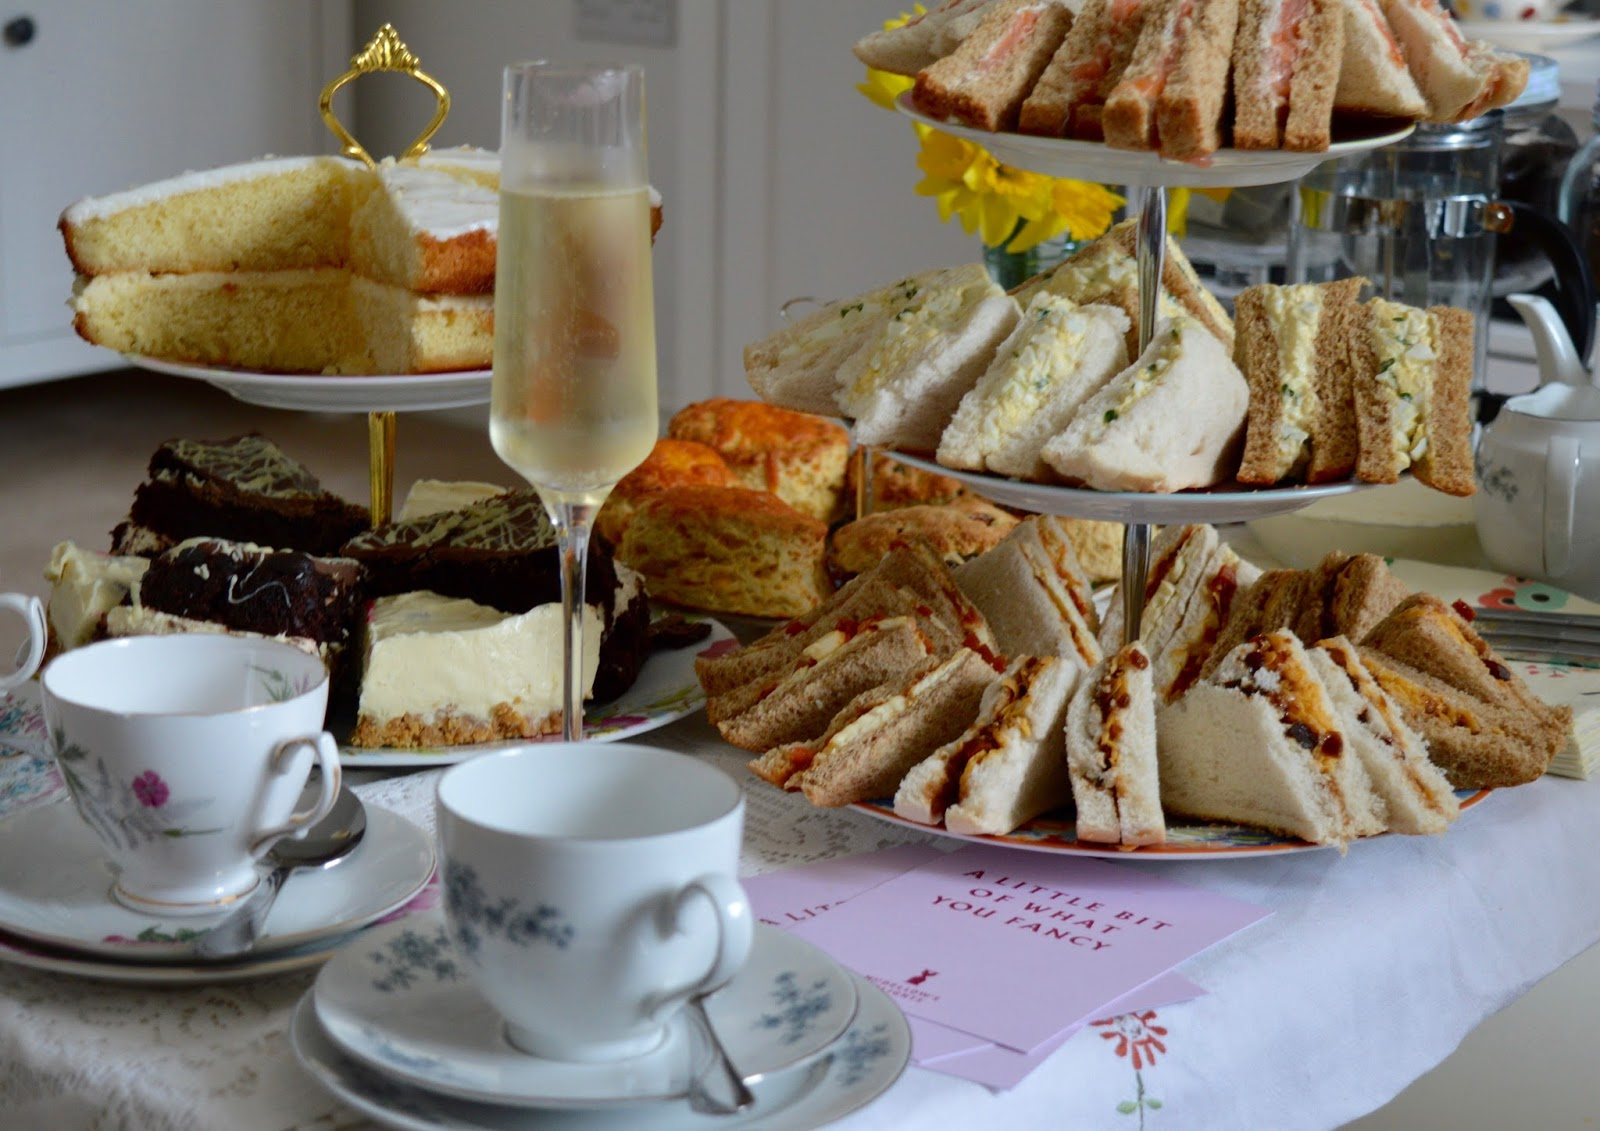 Afternoon Tea delivered in Newcastle with Mrs Dellows Delights - homemade cakes, prosecco and teacups